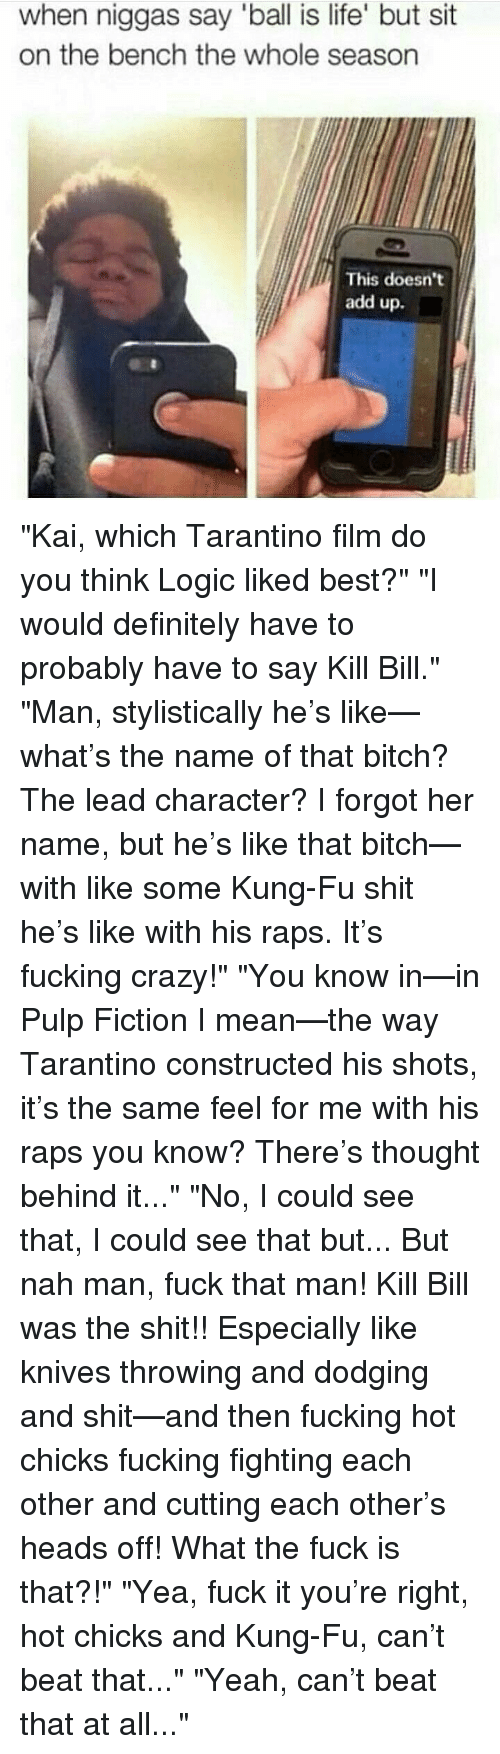 """Beat That: when niggas say """"ball is life' but sit  on the bench the whole season  This doesn't  add up. """"Kai, which Tarantino film do you think Logic liked best?"""" """"I would definitely have to probably have to say Kill Bill."""" """"Man, stylistically he's like—what's the name of that bitch? The lead character? I forgot her name, but he's like that bitch—with like some Kung-Fu shit he's like with his raps. It's fucking crazy!"""" """"You know in—in Pulp Fiction I mean—the way Tarantino constructed his shots, it's the same feel for me with his raps you know? There's thought behind it..."""" """"No, I could see that, I could see that but... But nah man, fuck that man! Kill Bill was the shit!! Especially like knives throwing and dodging and shit—and then fucking hot chicks fucking fighting each other and cutting each other's heads off! What the fuck is that?!"""" """"Yea, fuck it you're right, hot chicks and Kung-Fu, can't beat that..."""" """"Yeah, can't beat that at all..."""""""